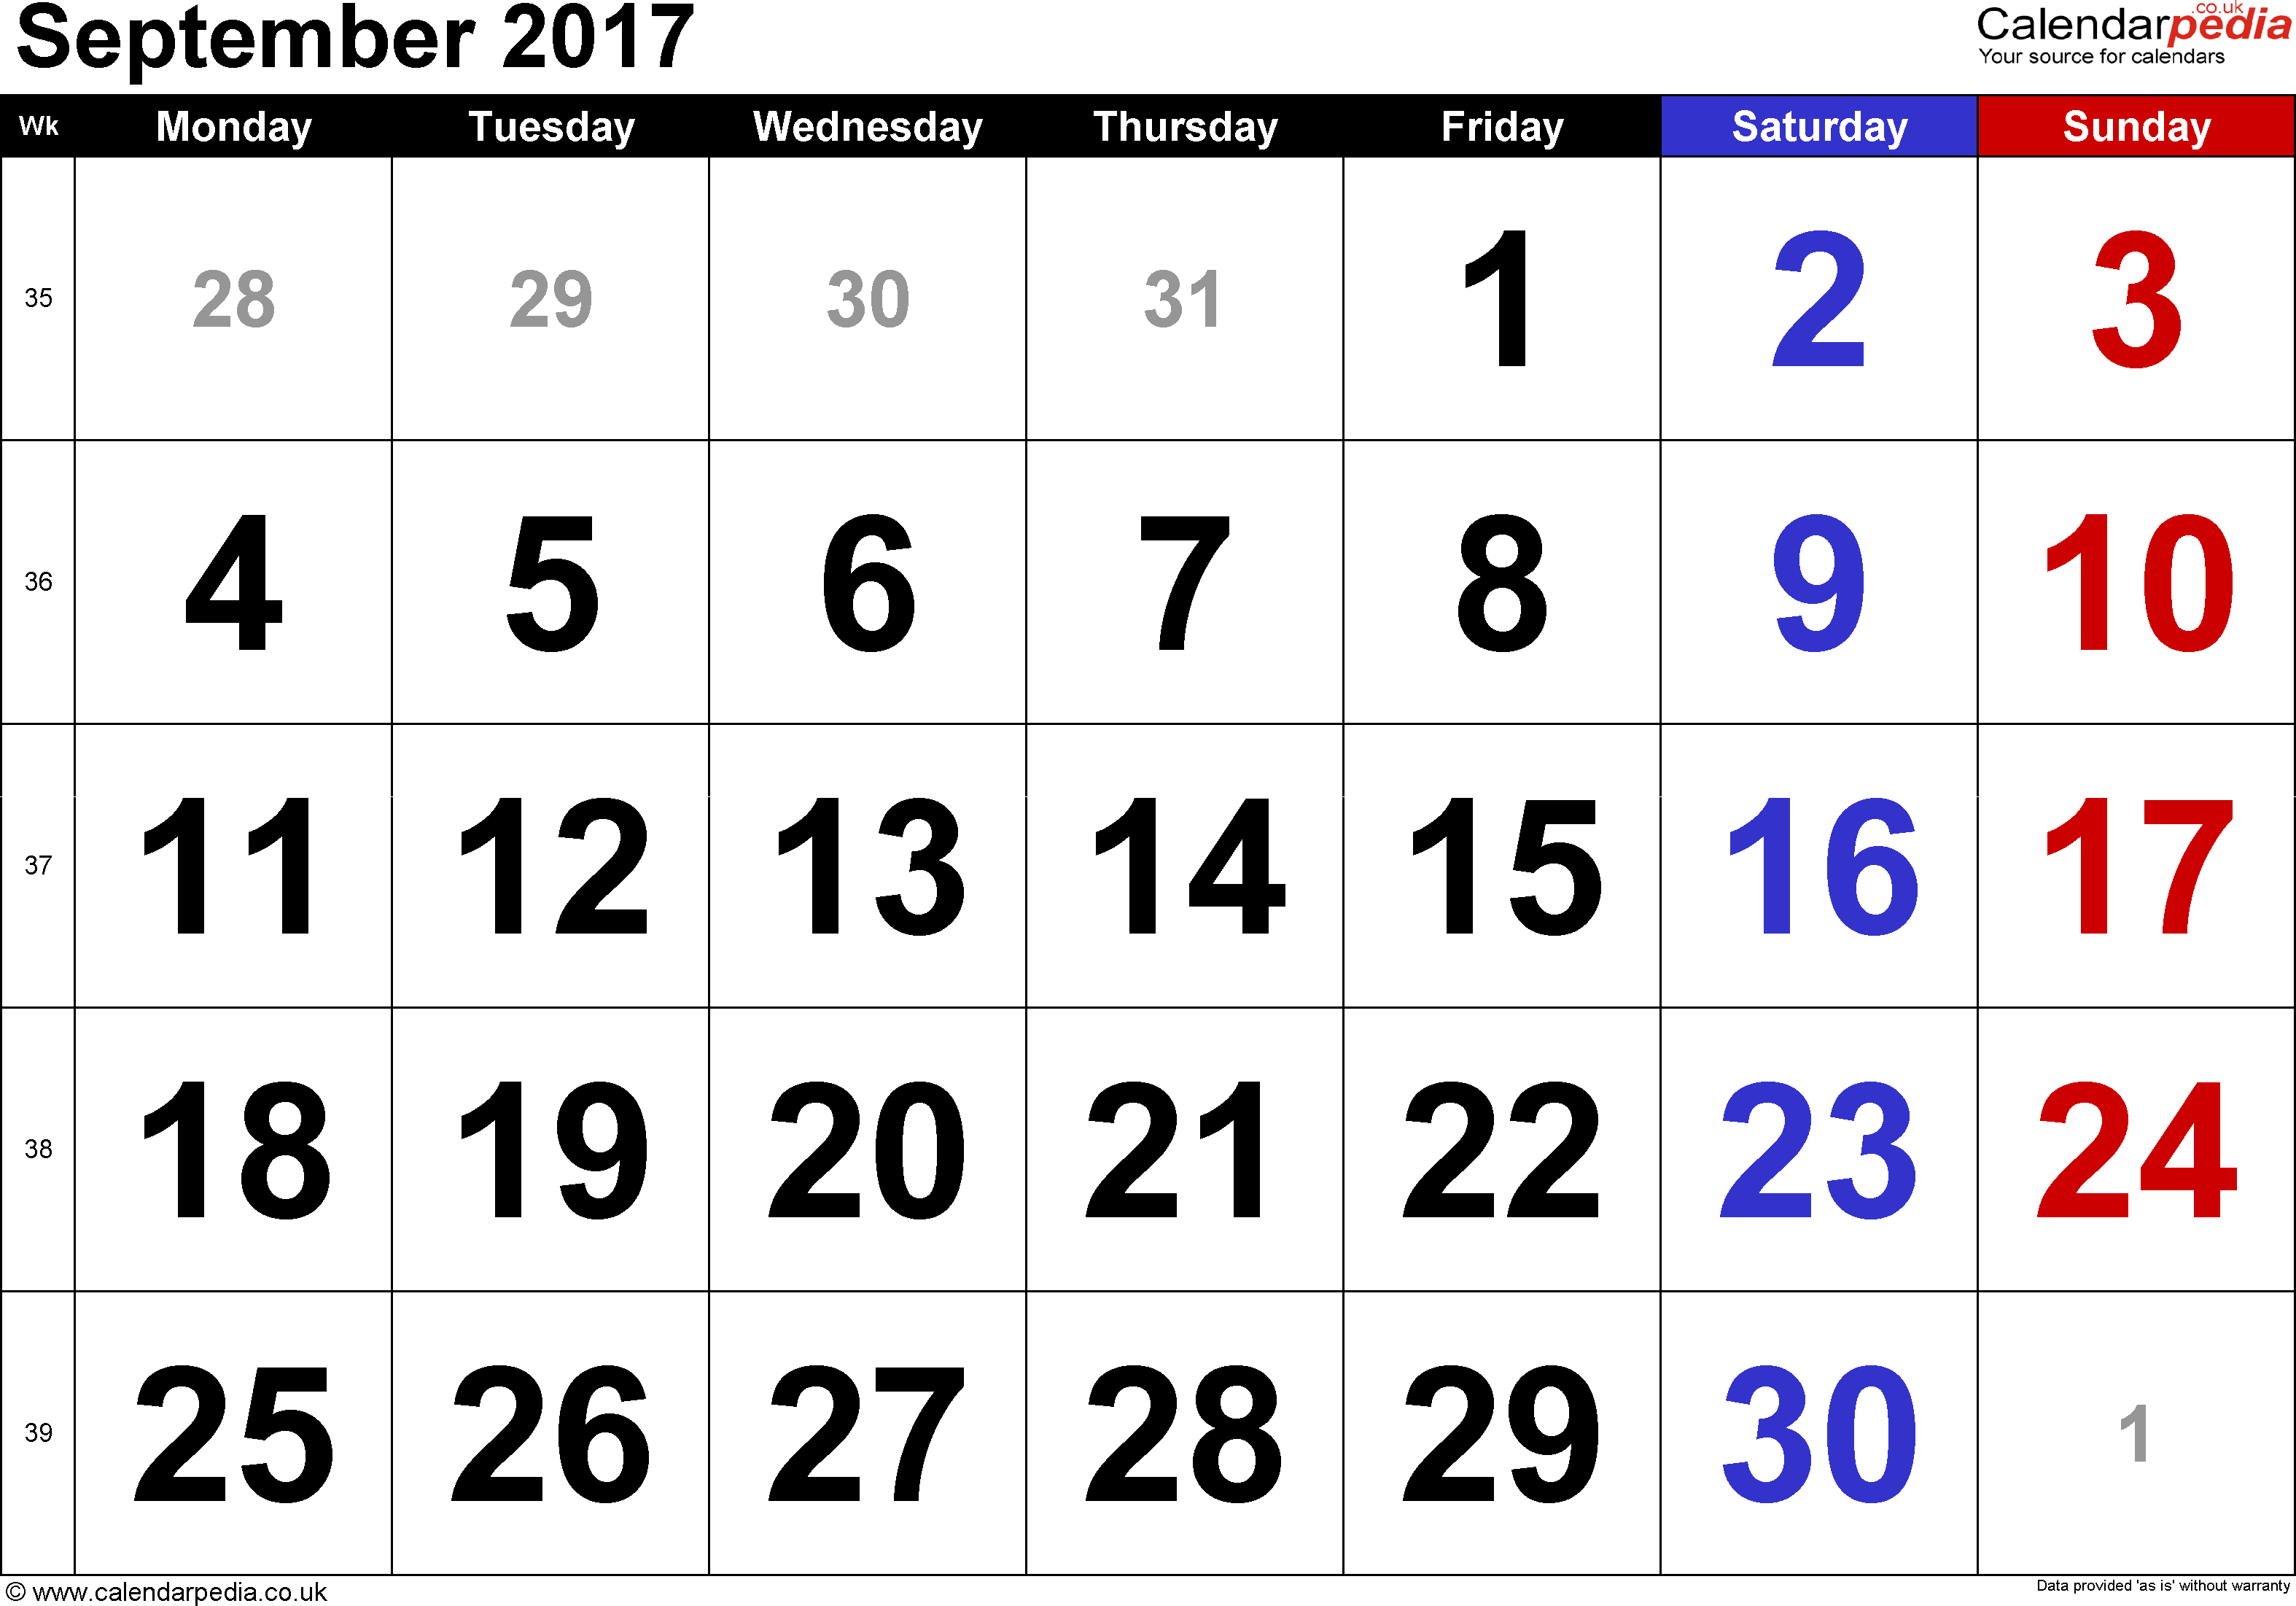 Calendar September 2017, landscape orientation, large numerals, 1 page, with UK bank holidays and week numbers